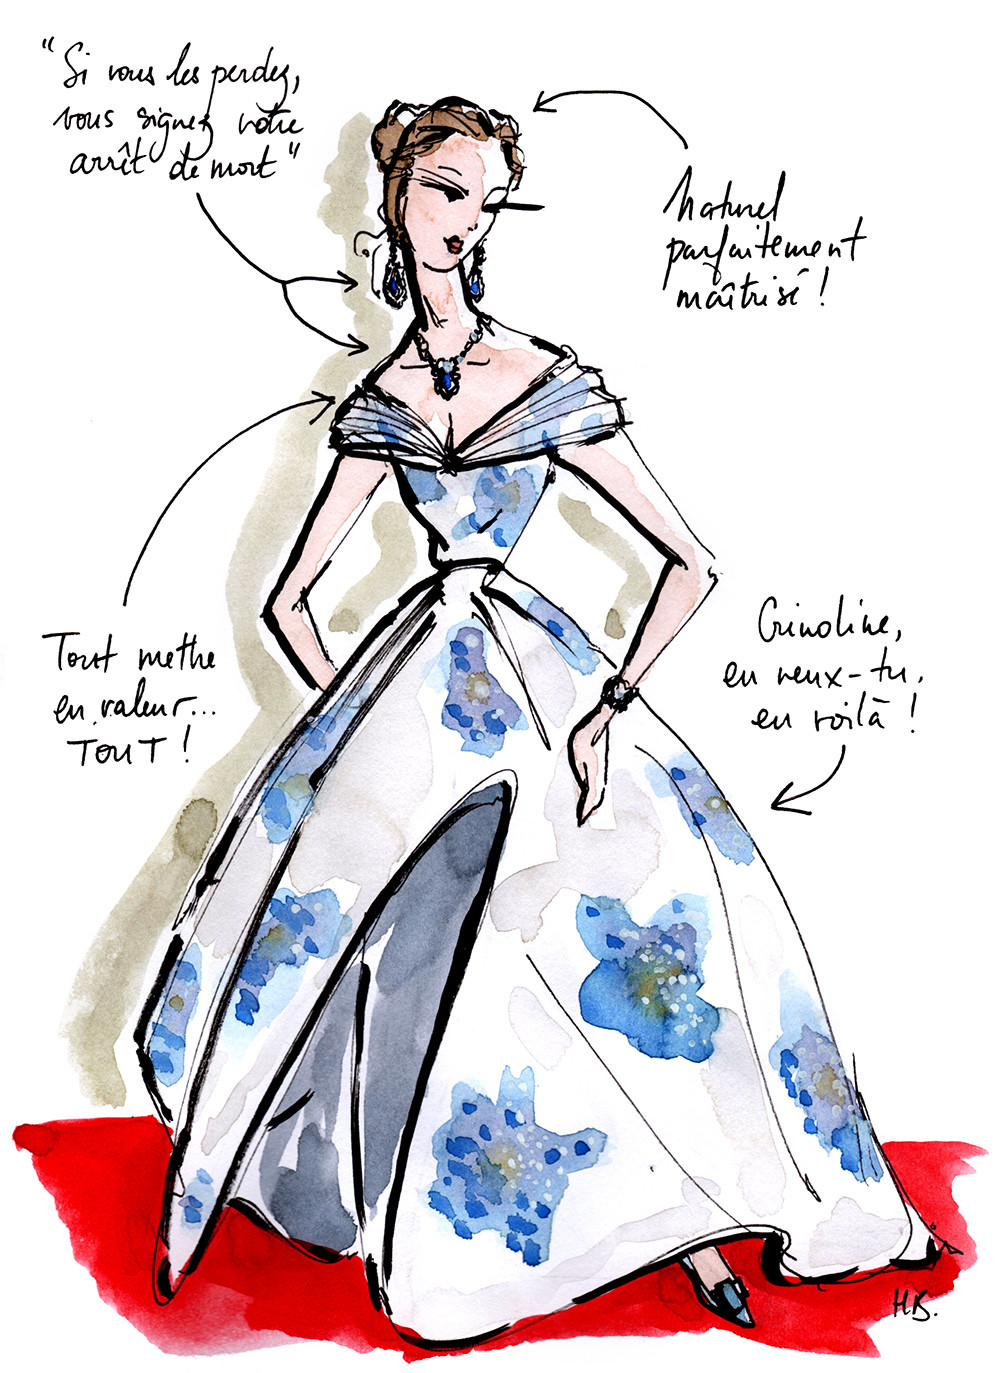 Tenue Festival de Cannes - La Princesse - Dessin/Illustration Habile Buston